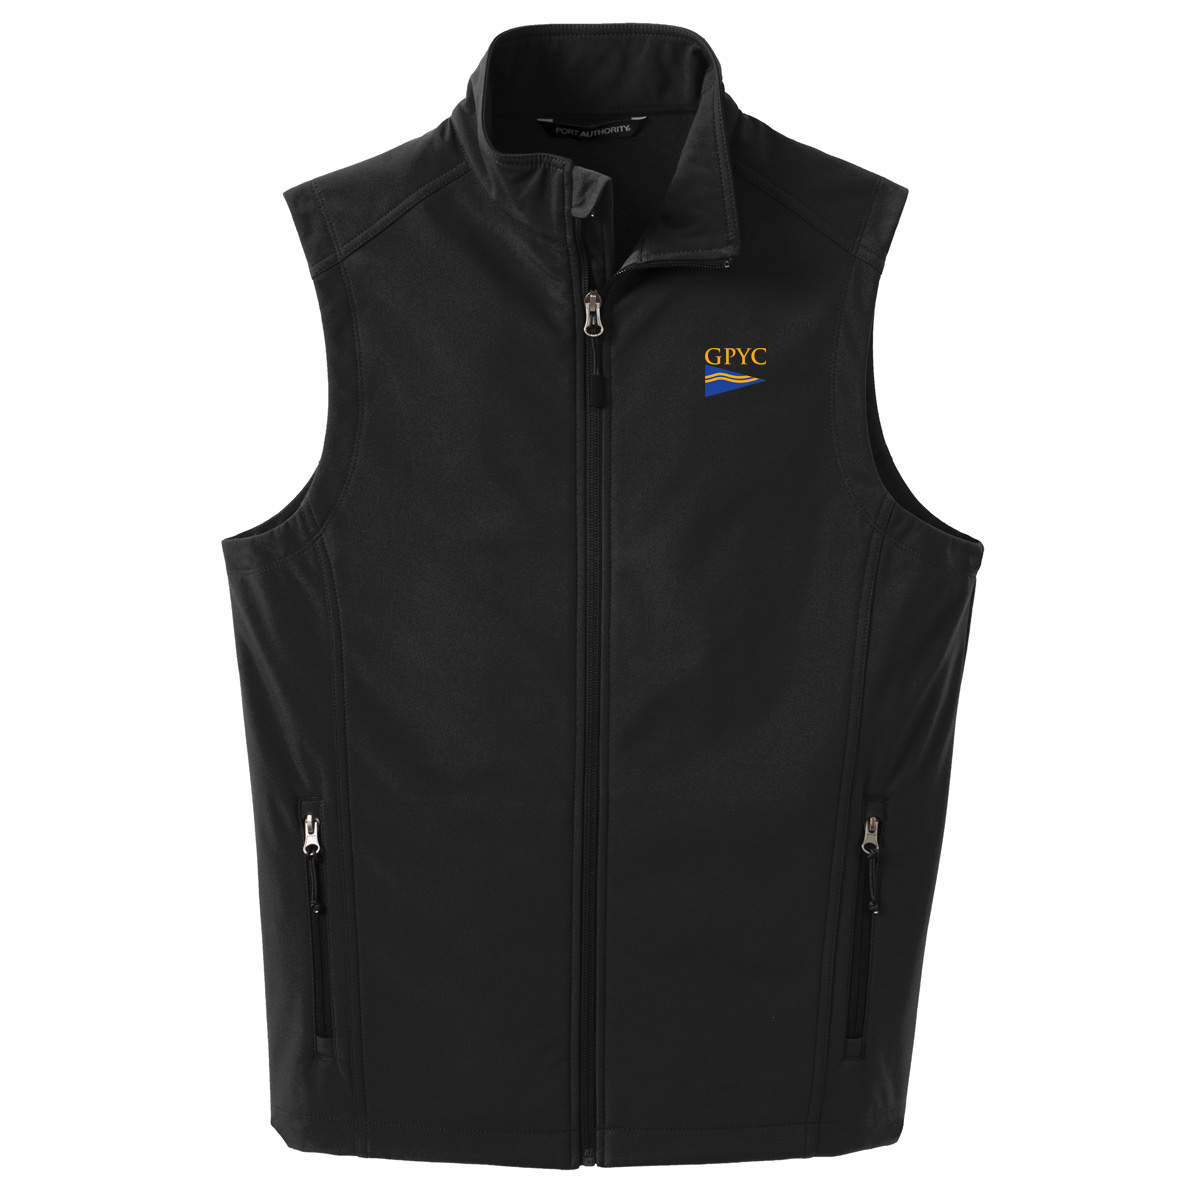 Great Pond Yacht Club - Men's Softshell Vest